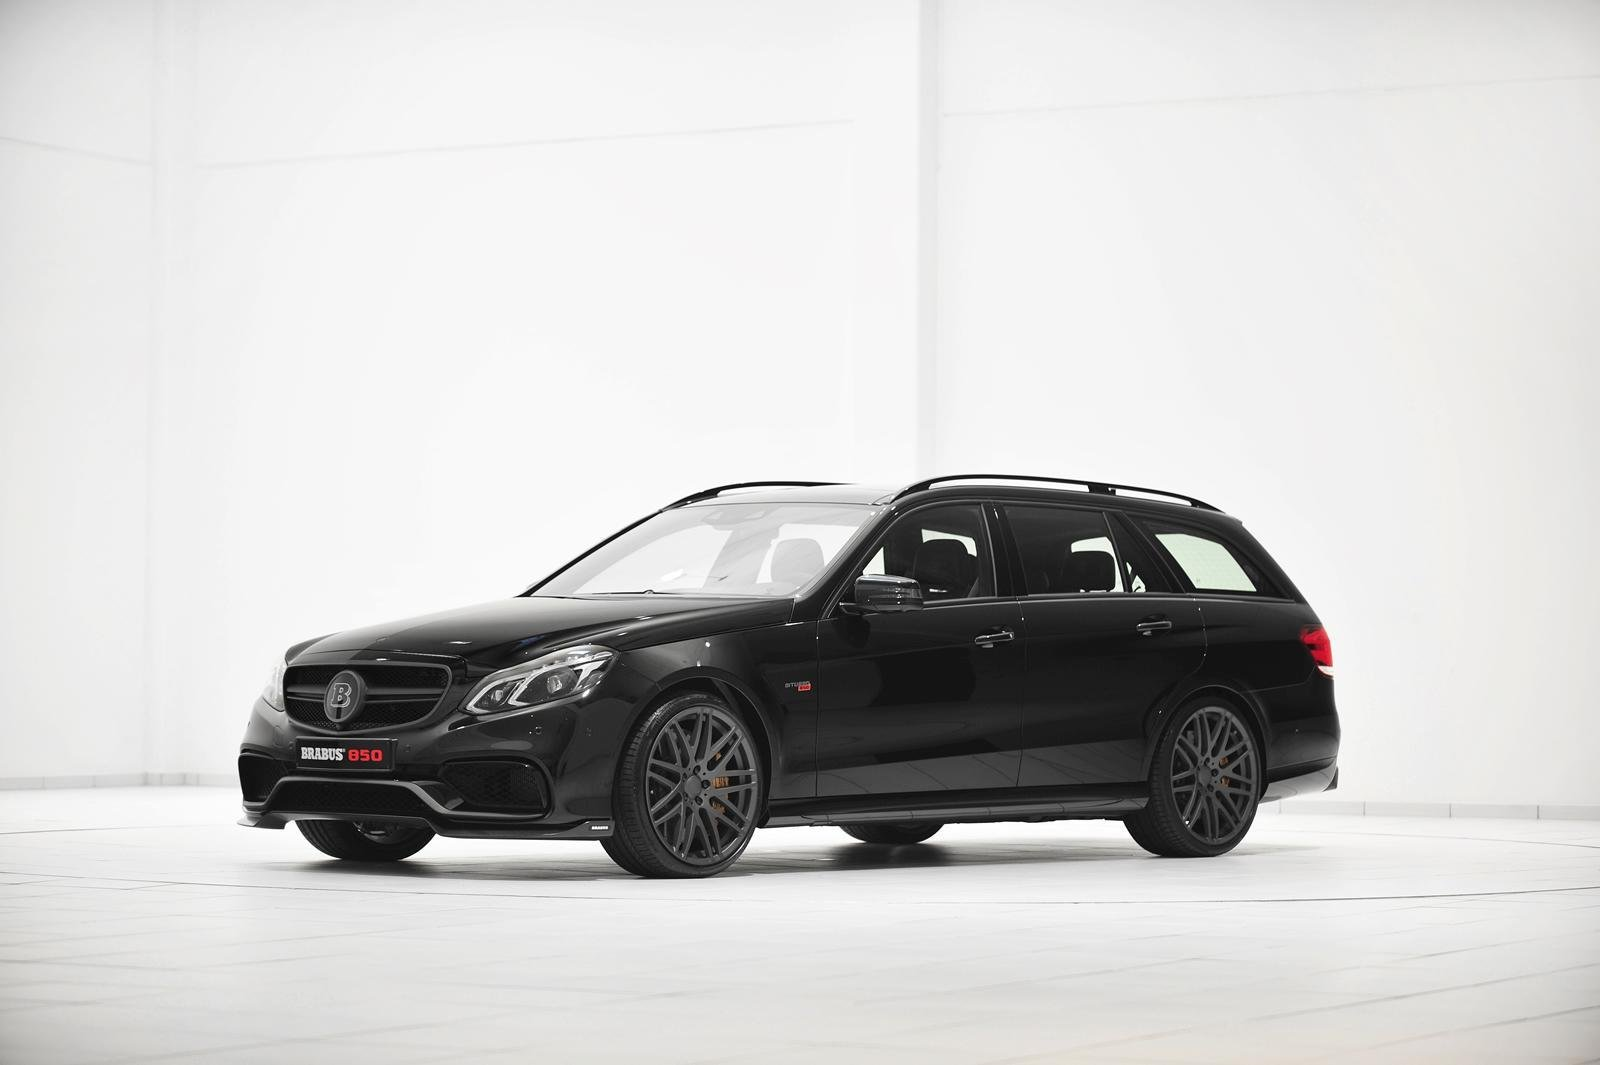 2014 mercedes e63 amg 850 6 0 biturbo by brabus review top speed. Black Bedroom Furniture Sets. Home Design Ideas